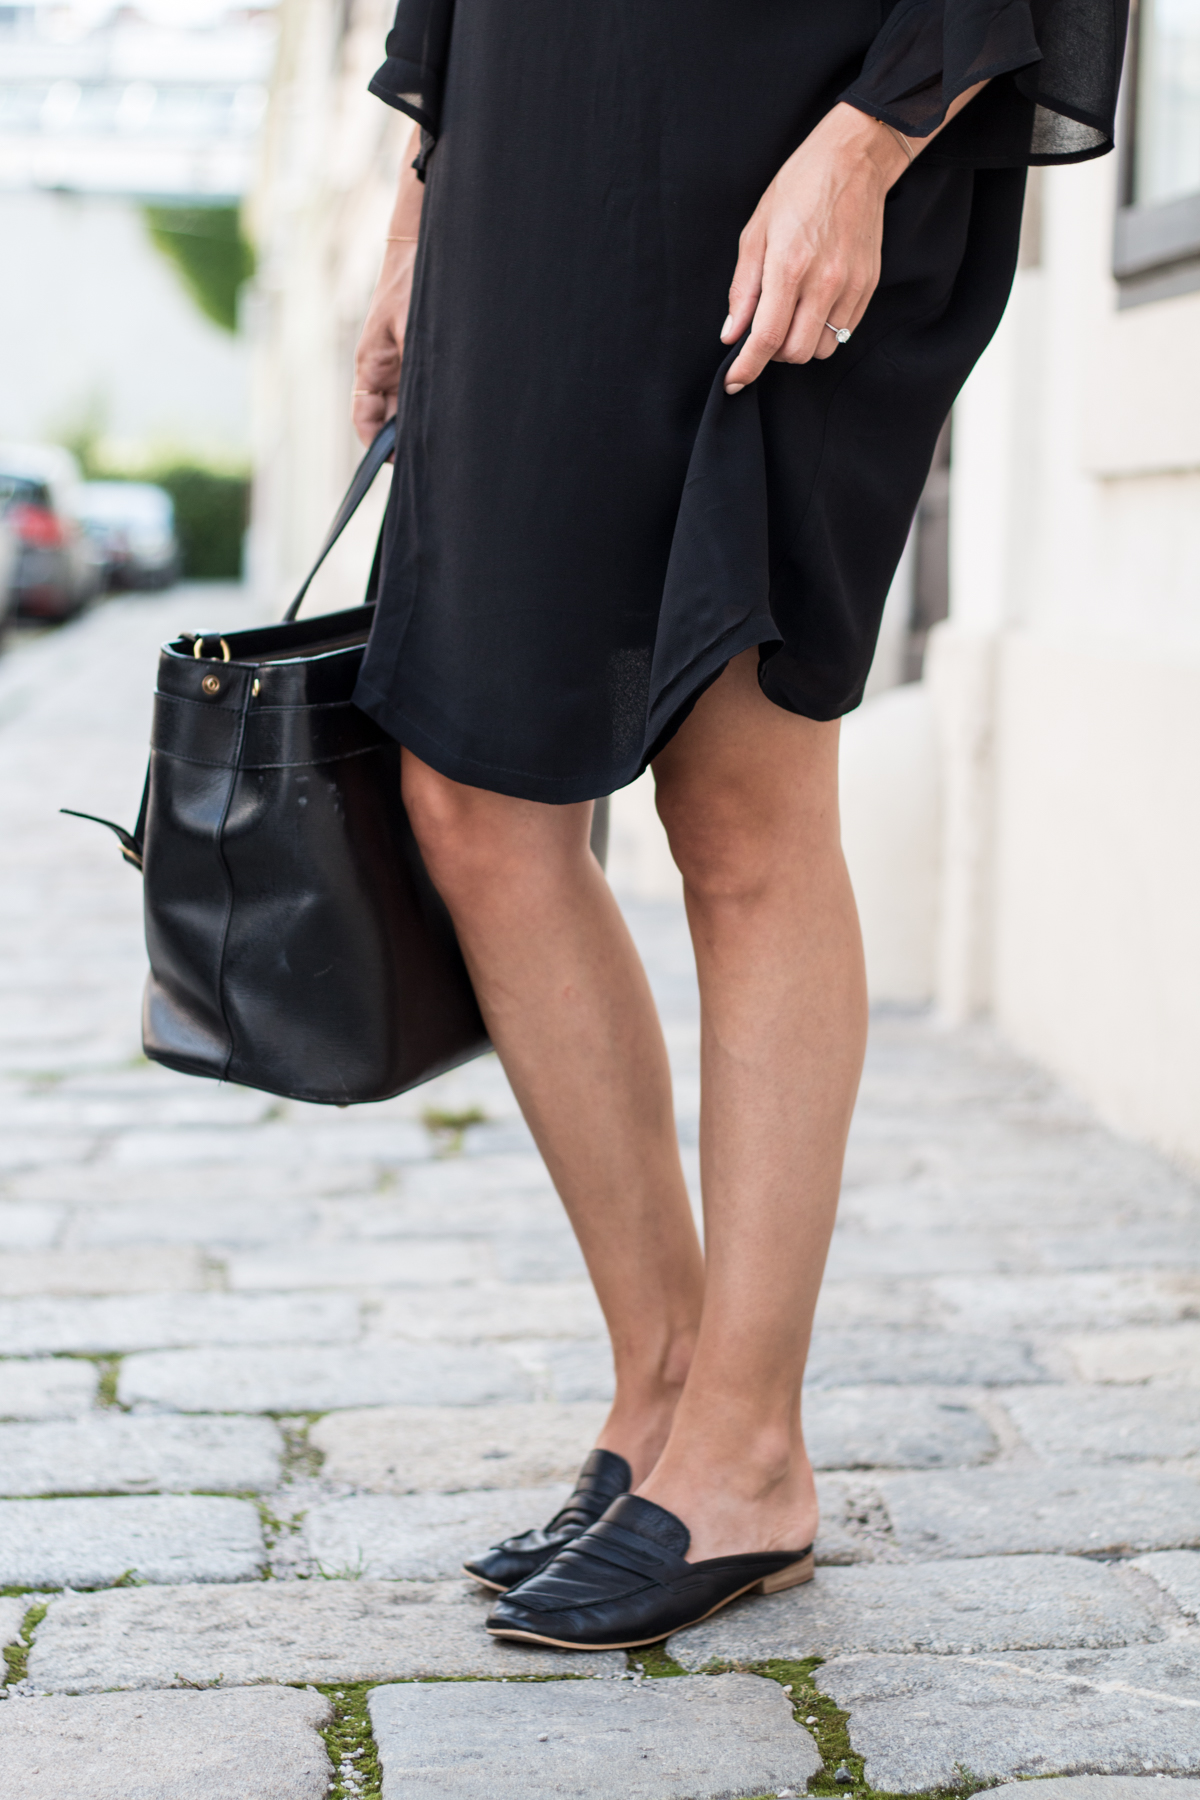 LBD Dressed Down | The Daily Dose